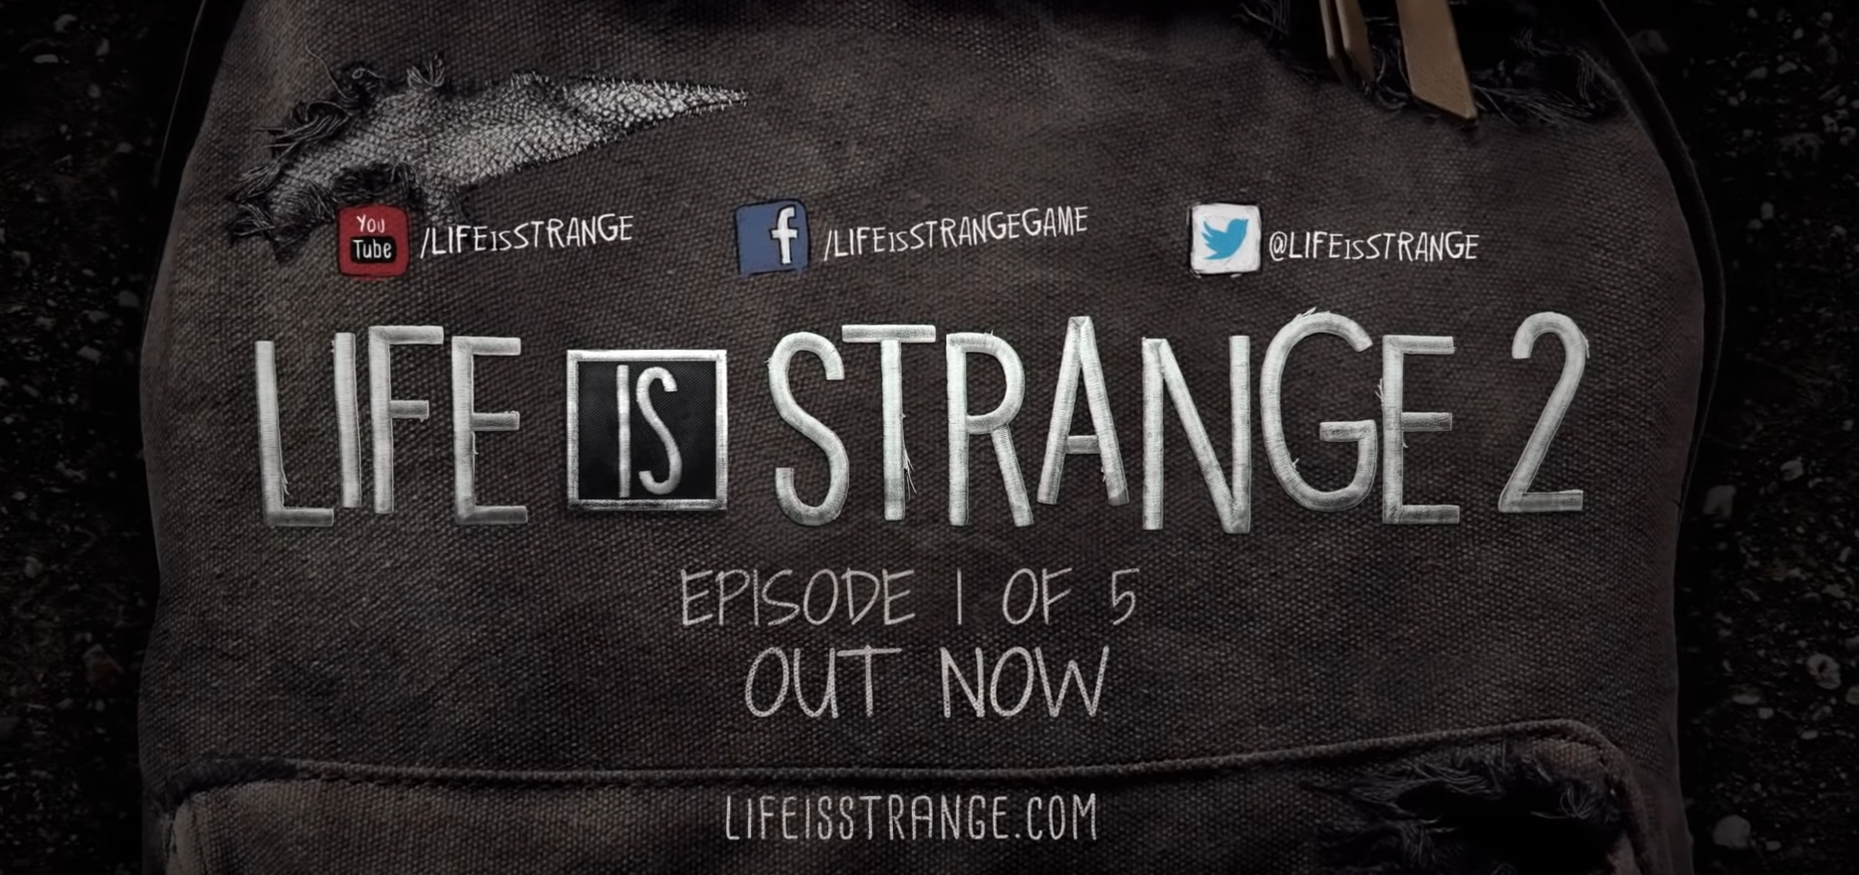 LIFE IS STRANGE 2 EPISODE 1 IS OUT NOW